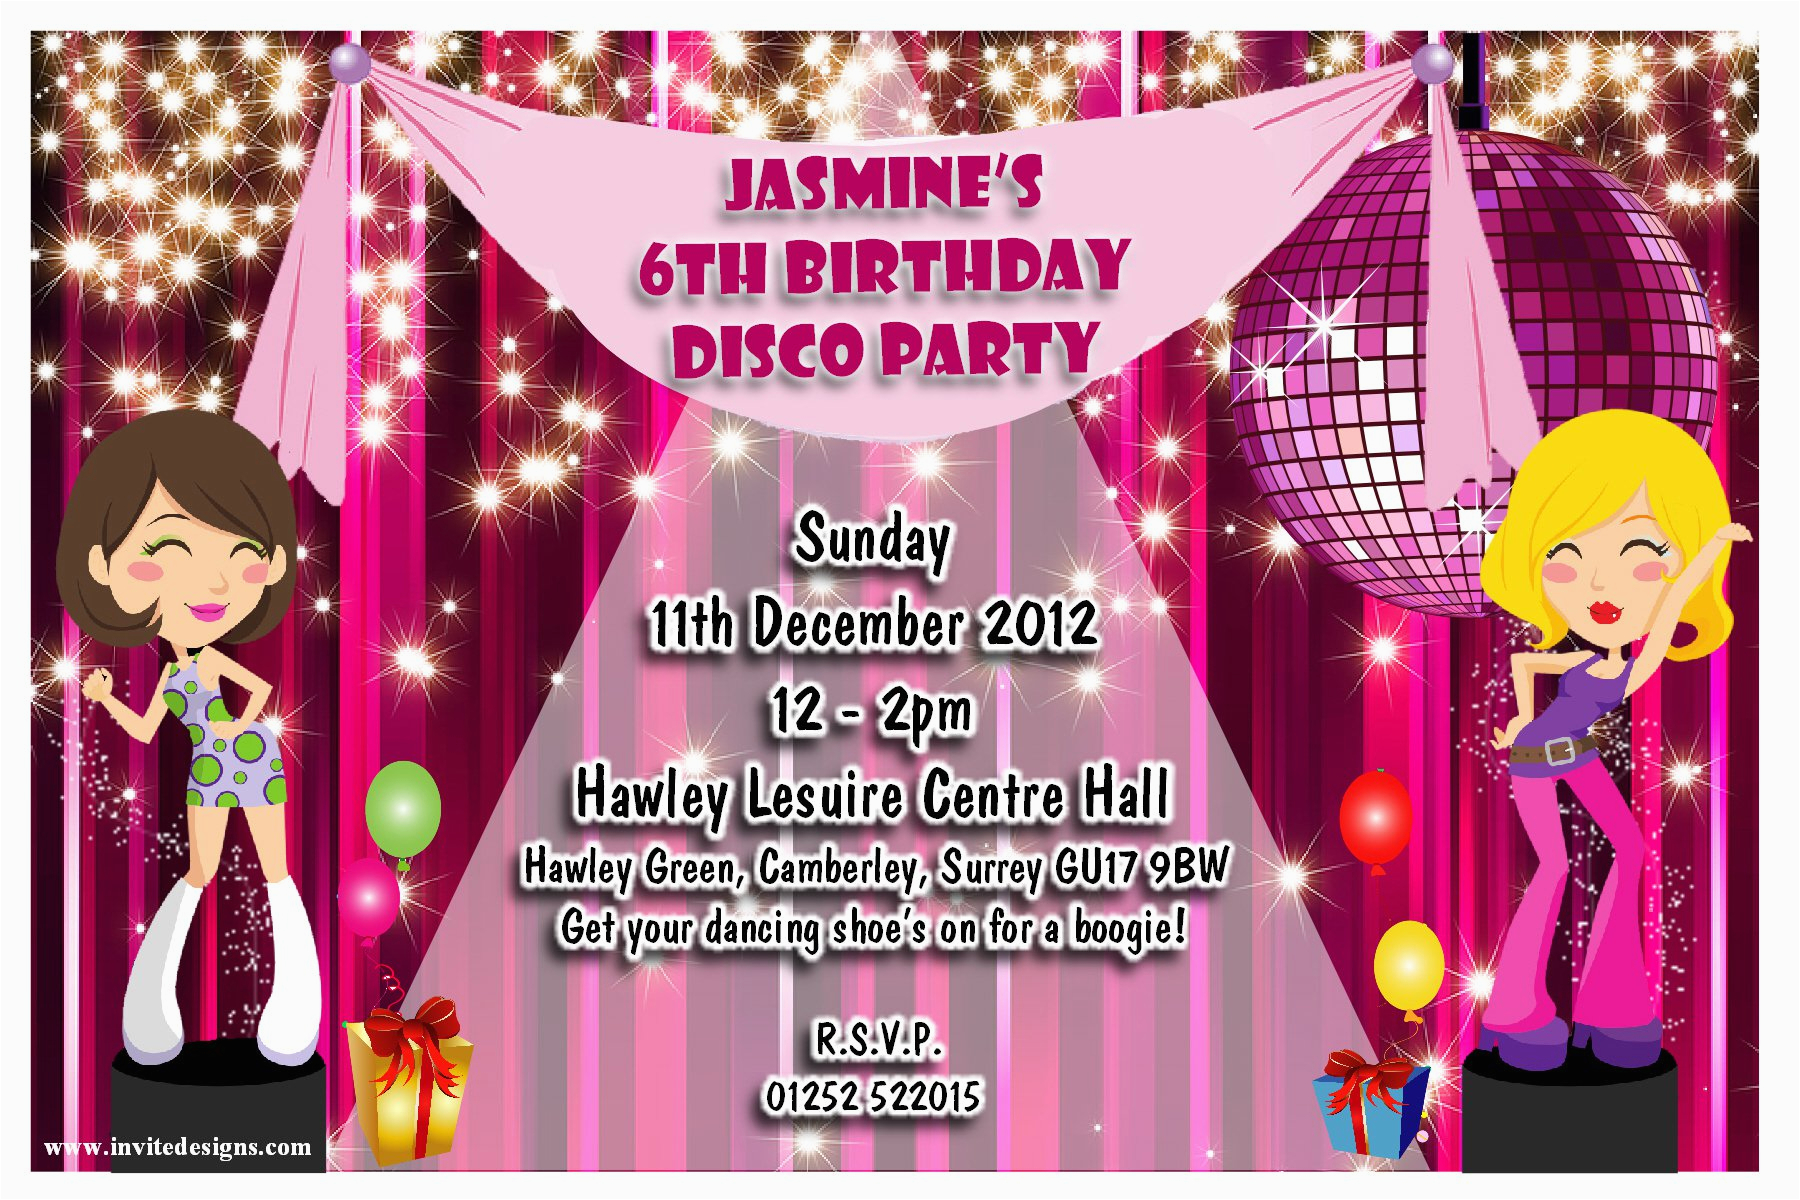 Customized Birthday Invitations Online Free Birthday Invitation Card